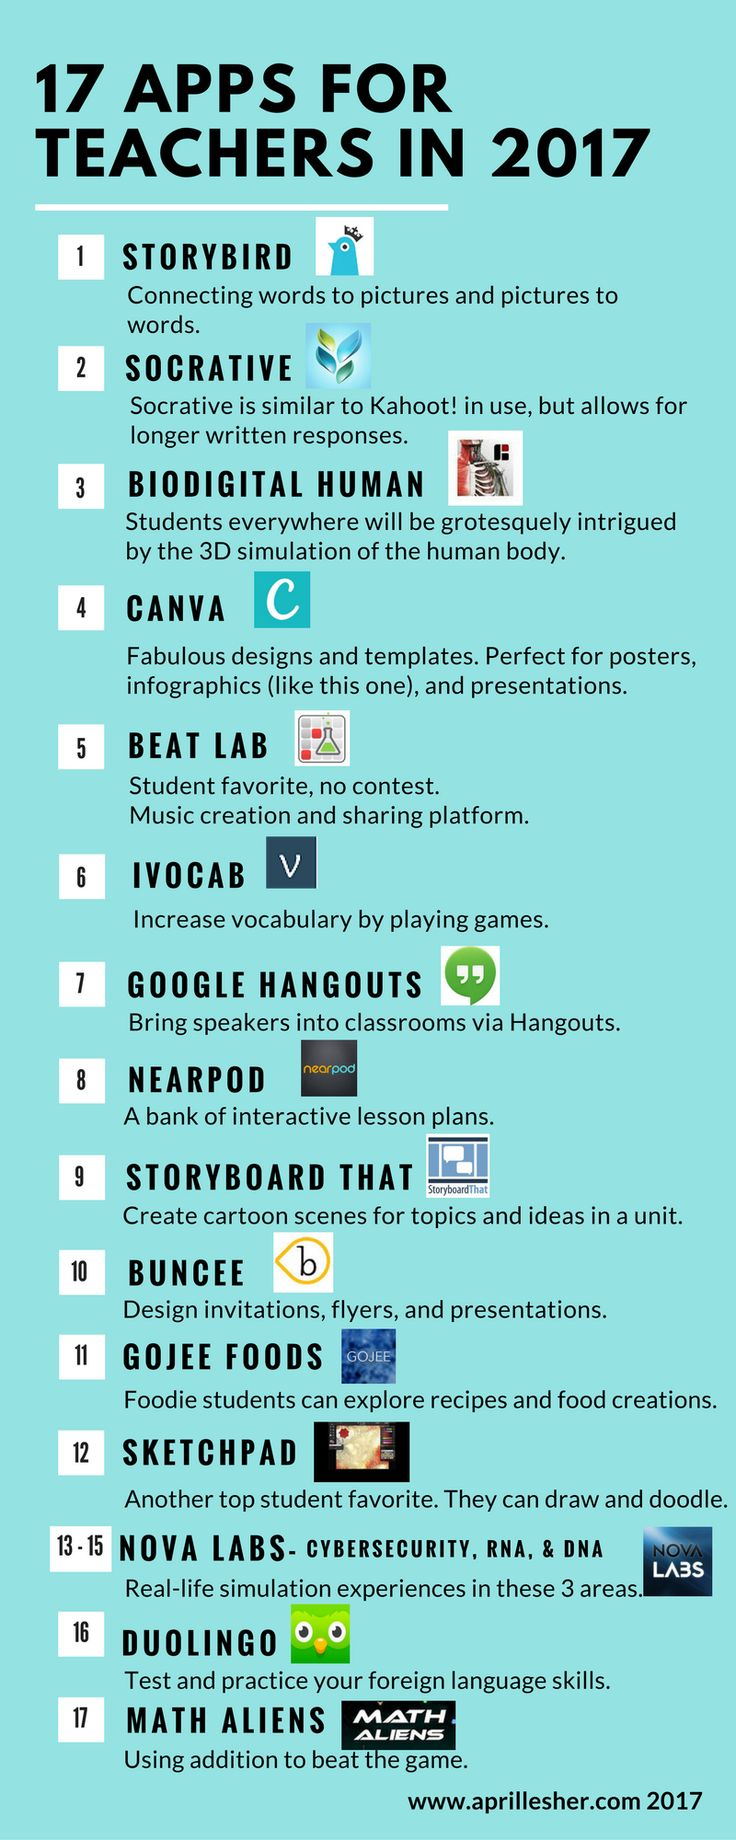 The best sites for students: do they help in studies